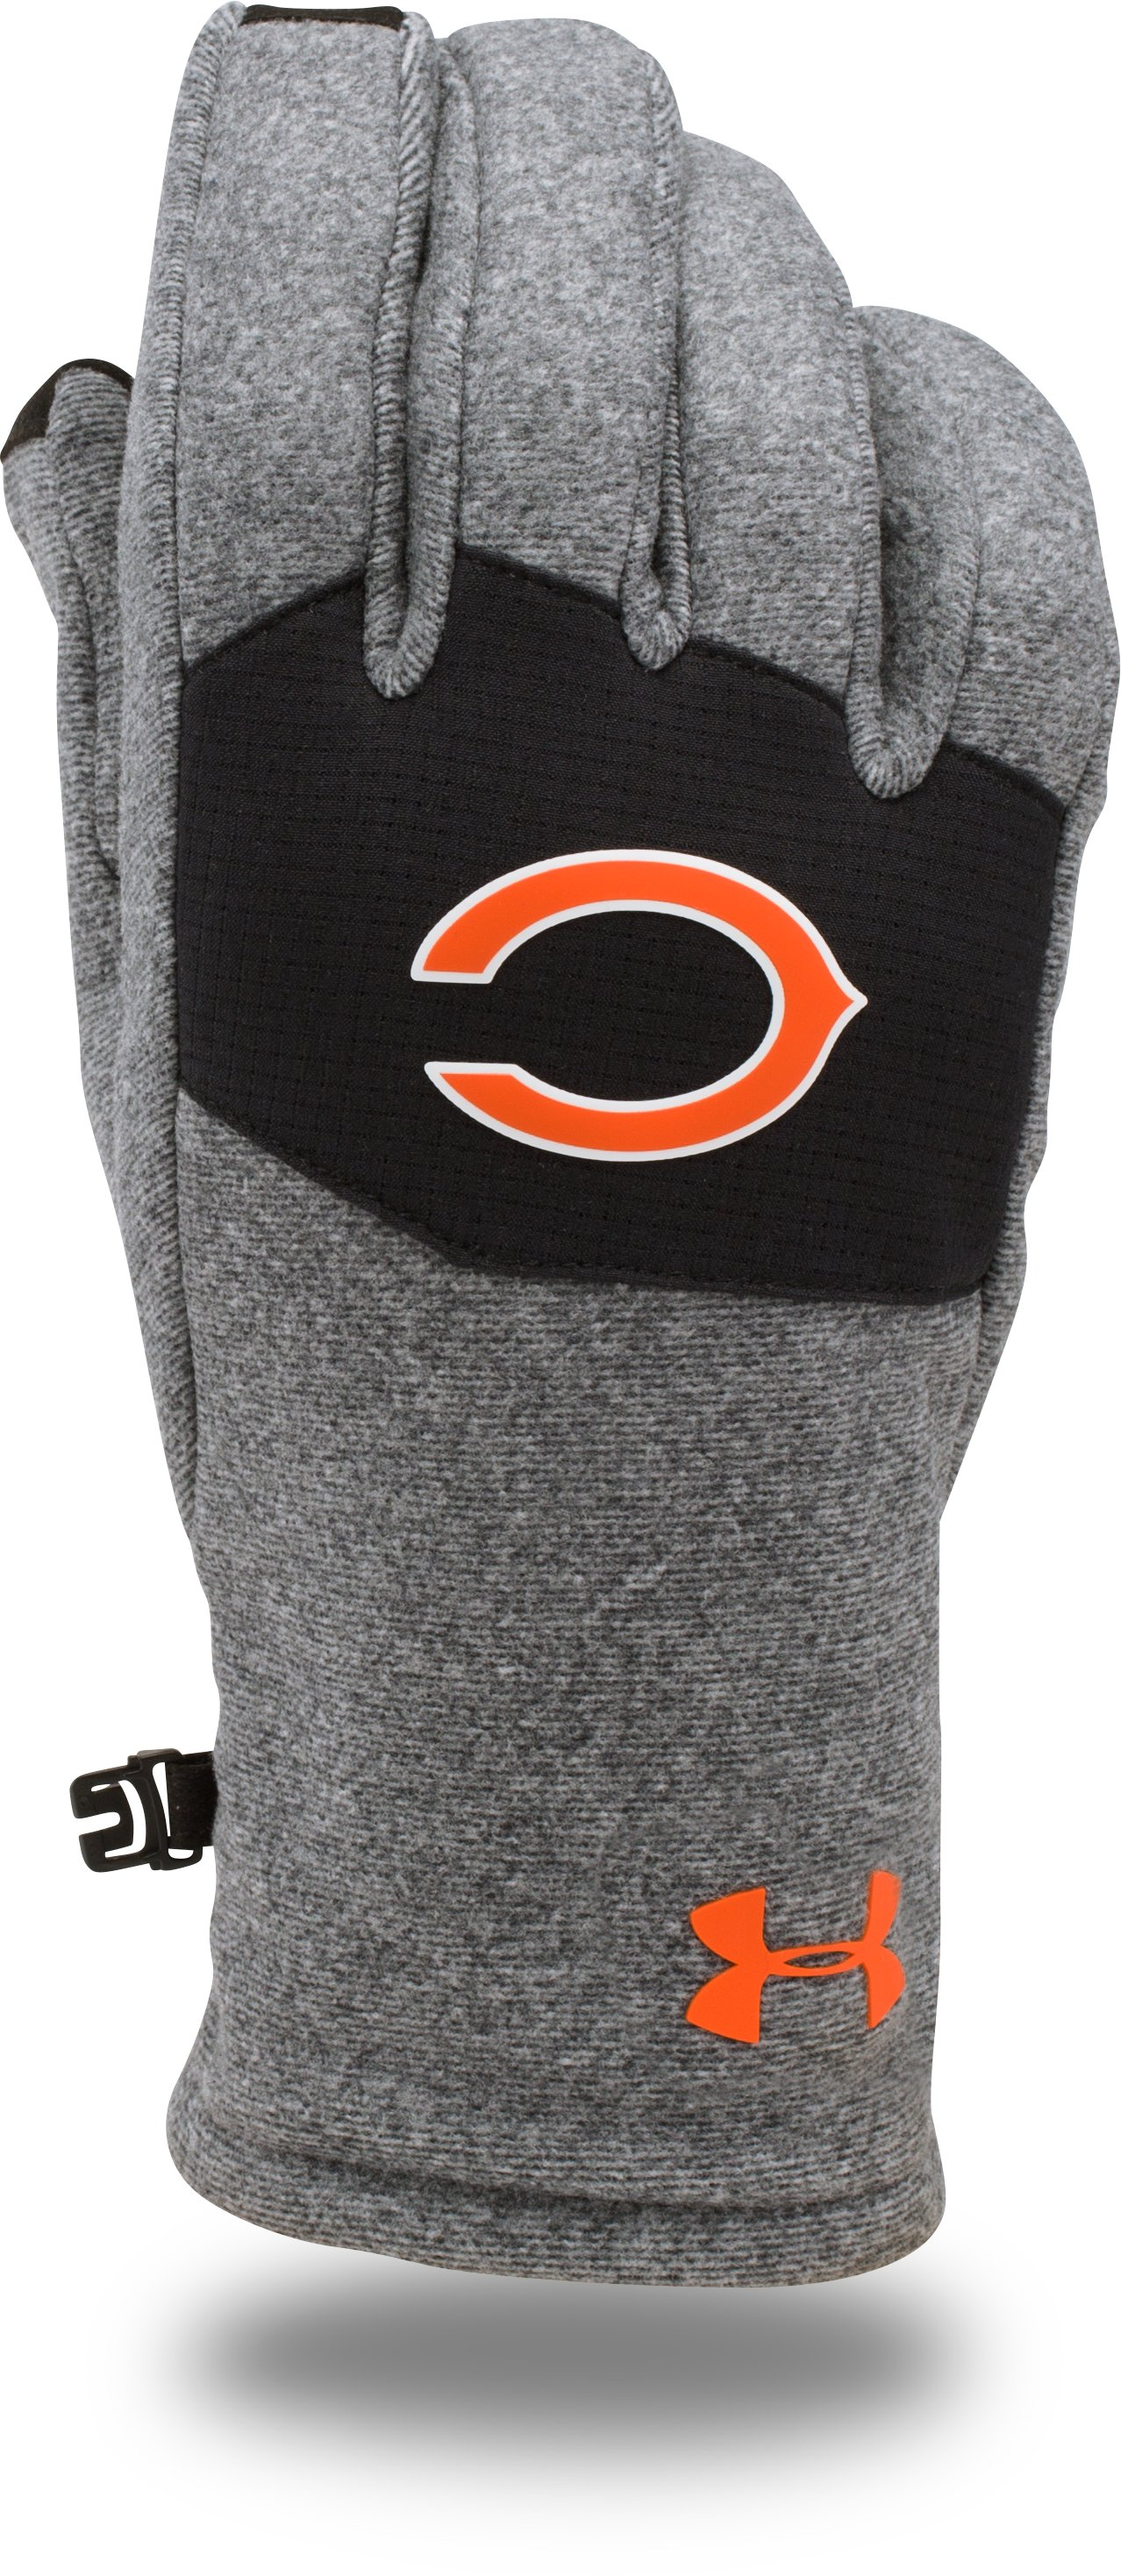 Kids' NFL Combine Authentic UA ColdGear® Infrared Fleece Gloves, Chicago Bears